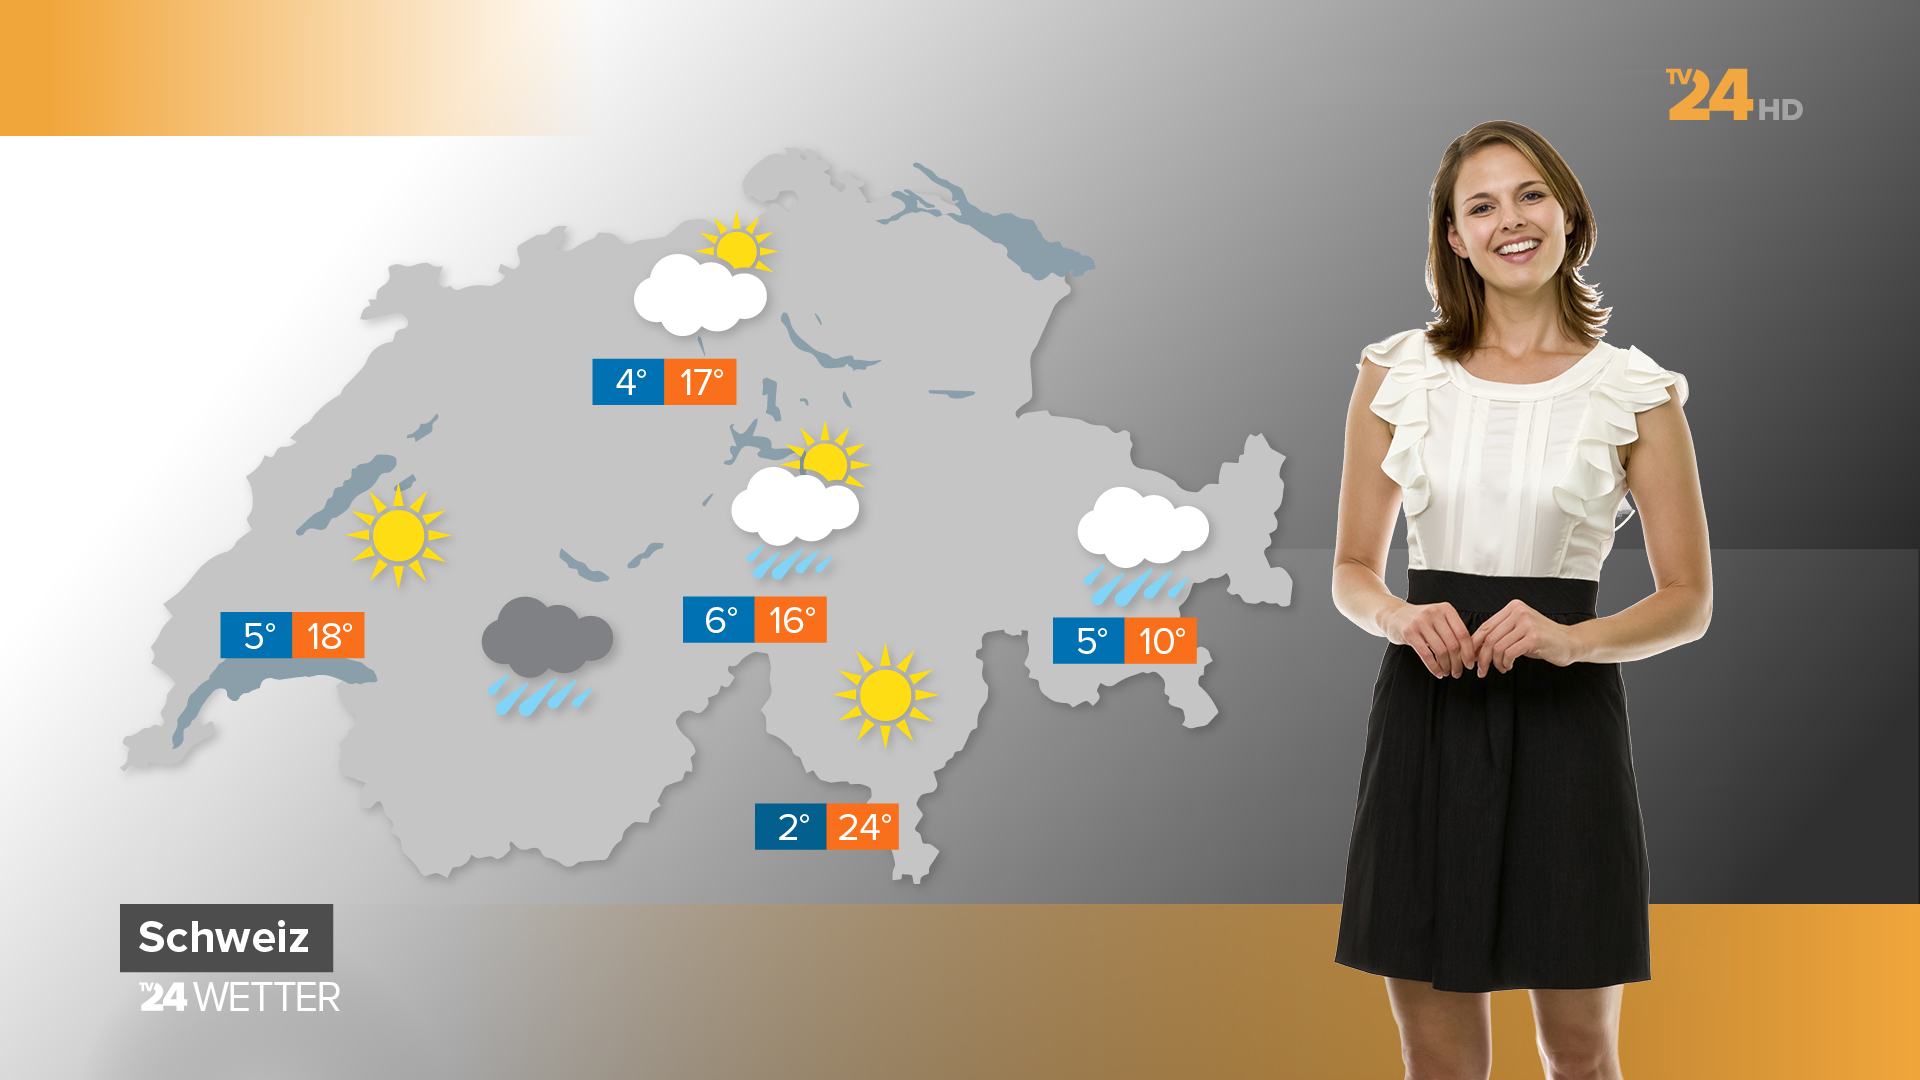 TV24 News and Weather, Branding, Brand Design, Opener, Wipes, On Air Graphics, Weather graphics, Typography, Graphic Design.